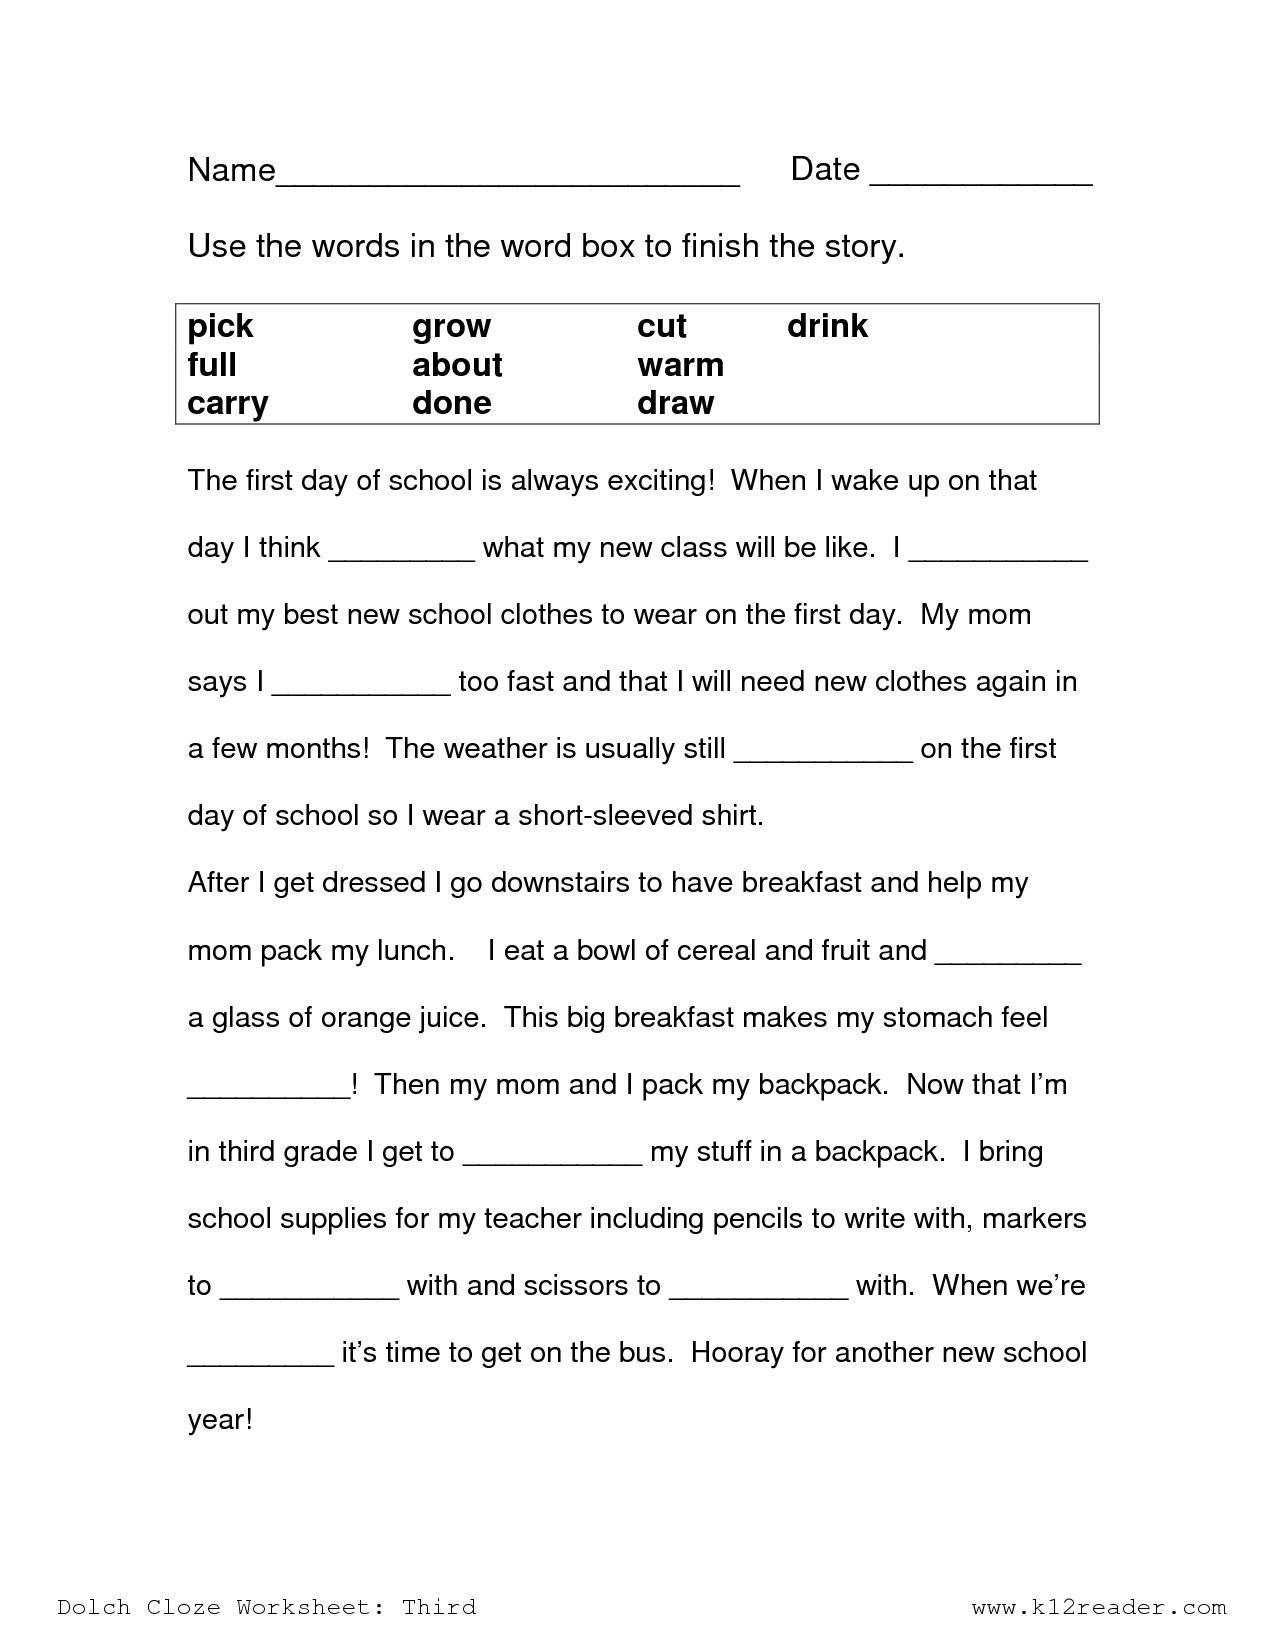 Cloze Passages For 3rd Grade